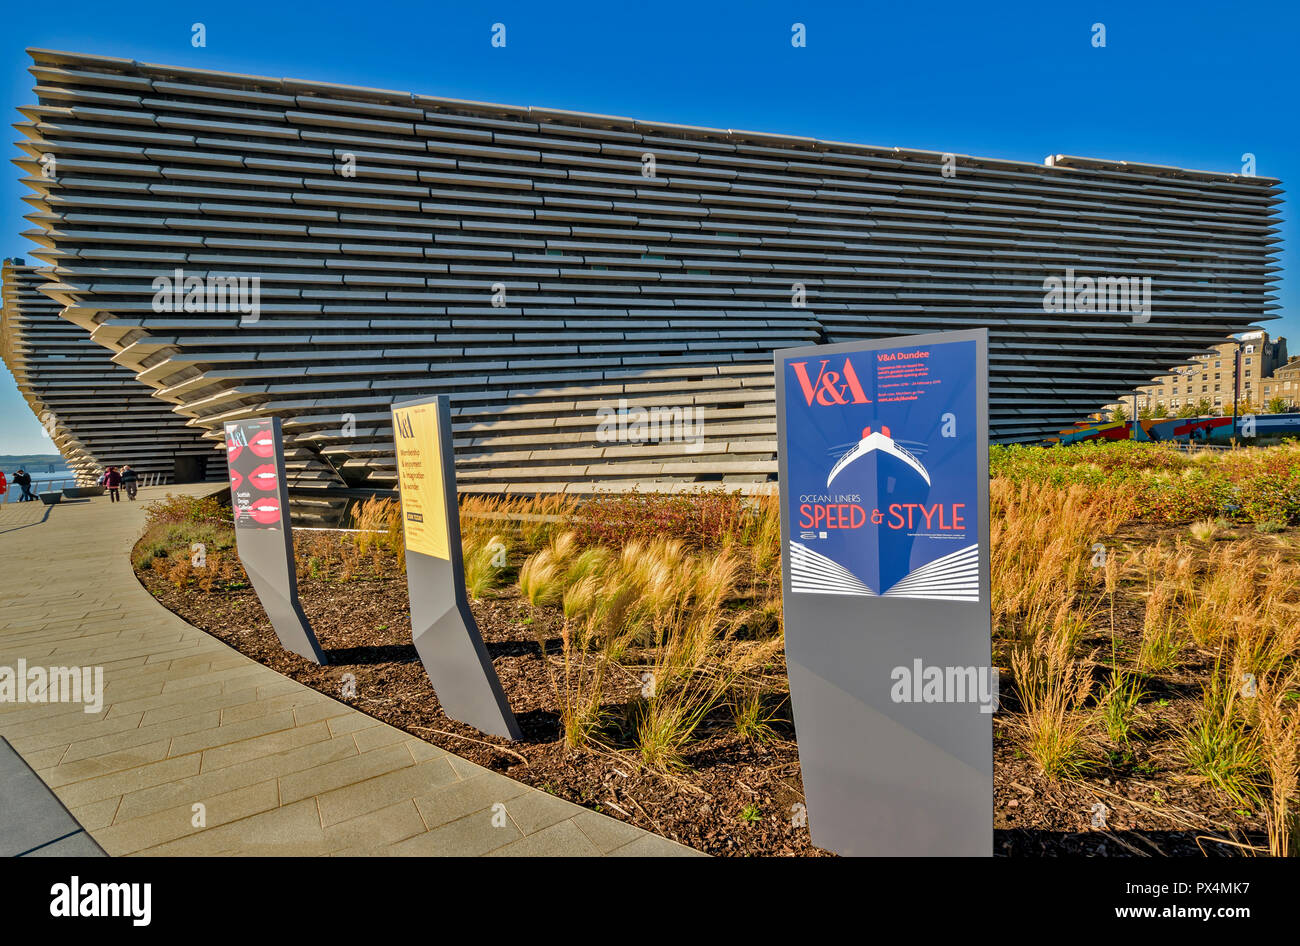 V & A MUSEUM OF DESIGN DUNDEE SCOTLAND THE BUILDING GRASS GARDEN AND SIGNS Stock Photo